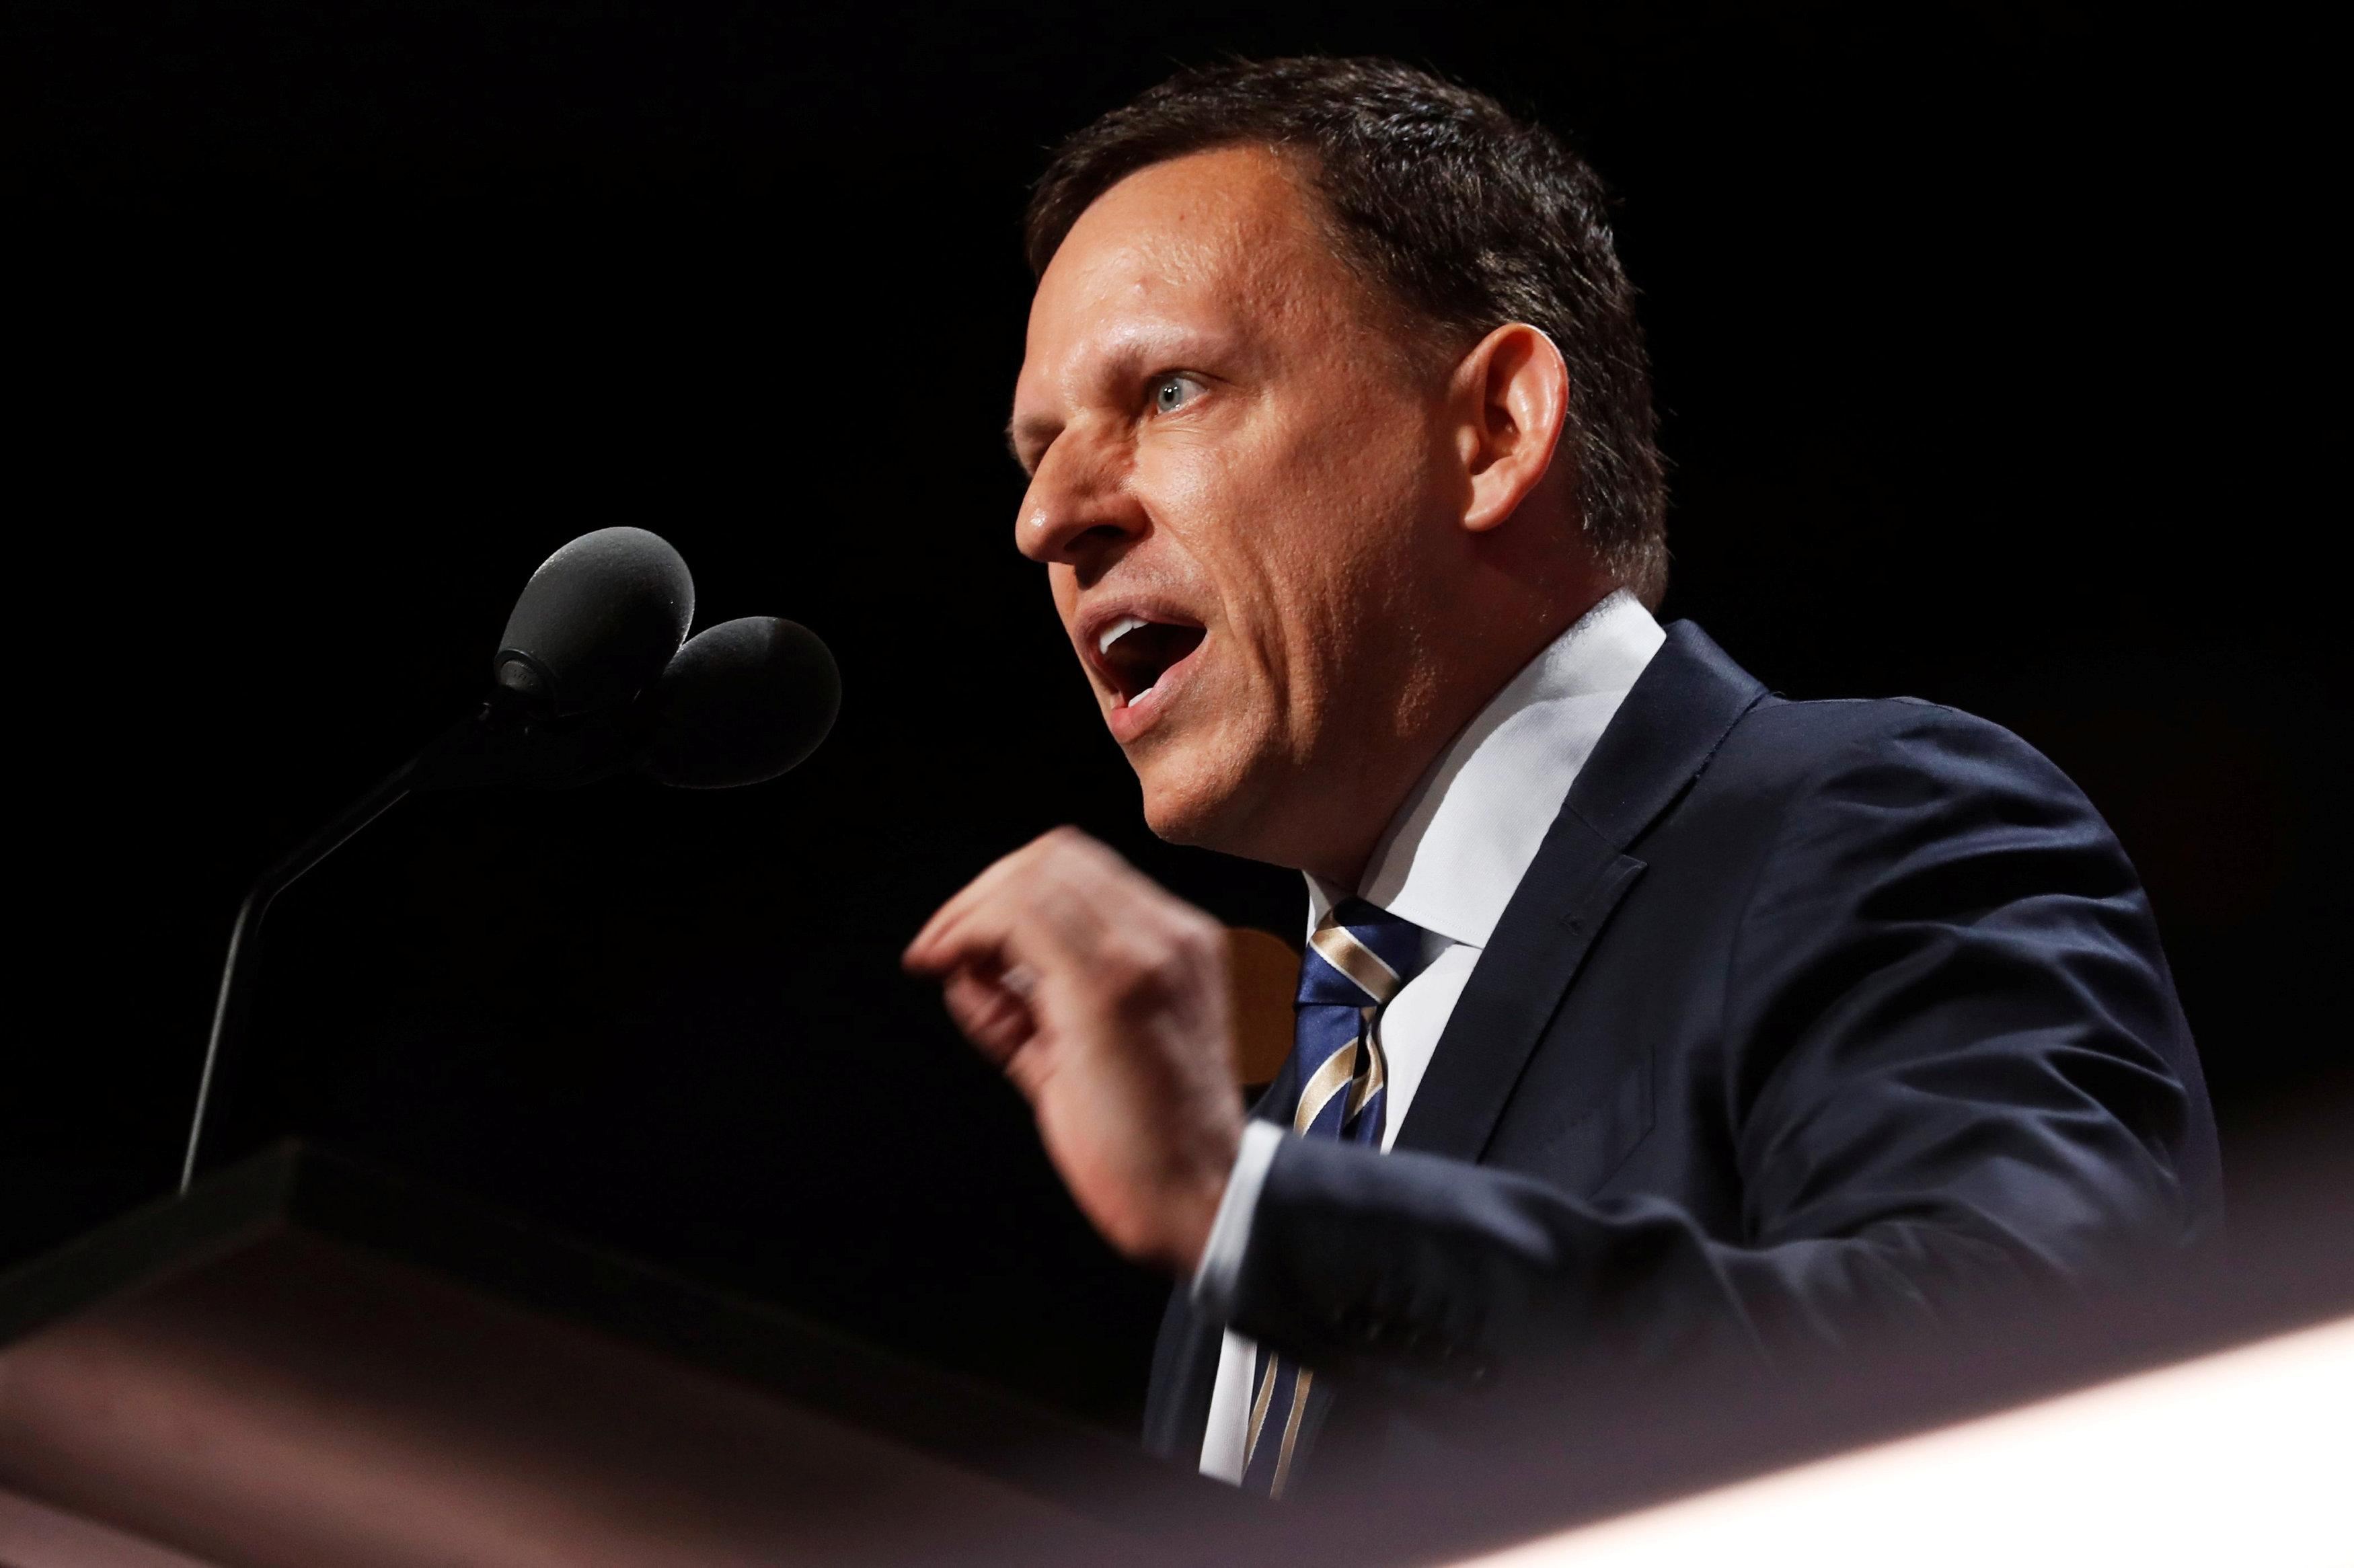 Paypal co-founder Peter Thiel speaks at the Republican National Convention in Cleveland, Ohio, U.S. July 21, 2016. Jonathan Ernst